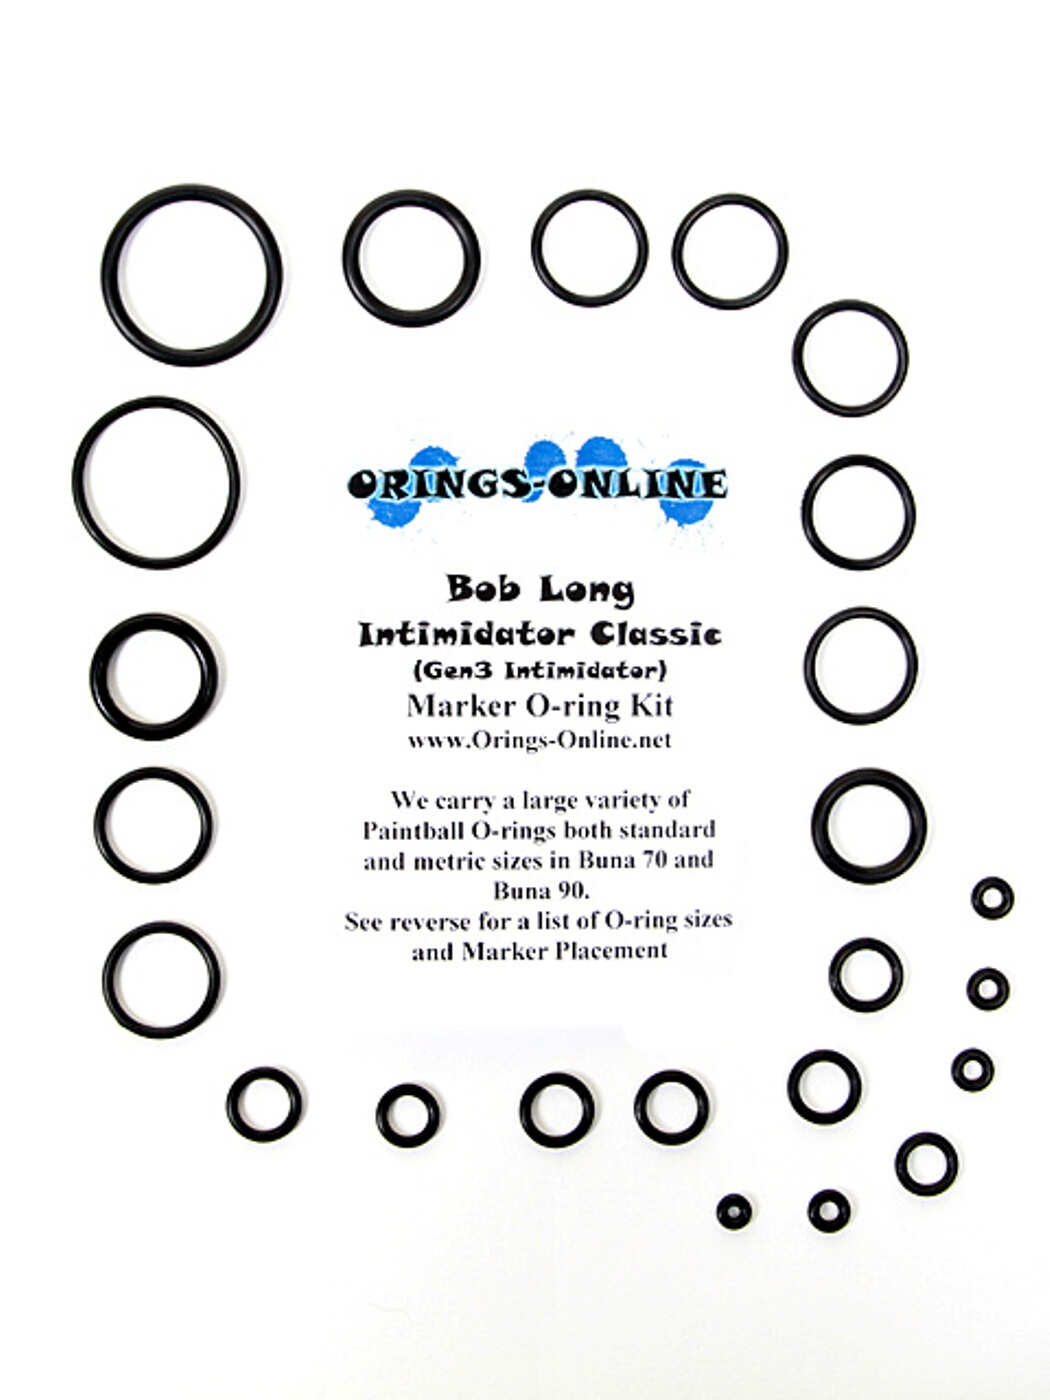 Bob Long Intimidator Classic Marker O-ring Kit